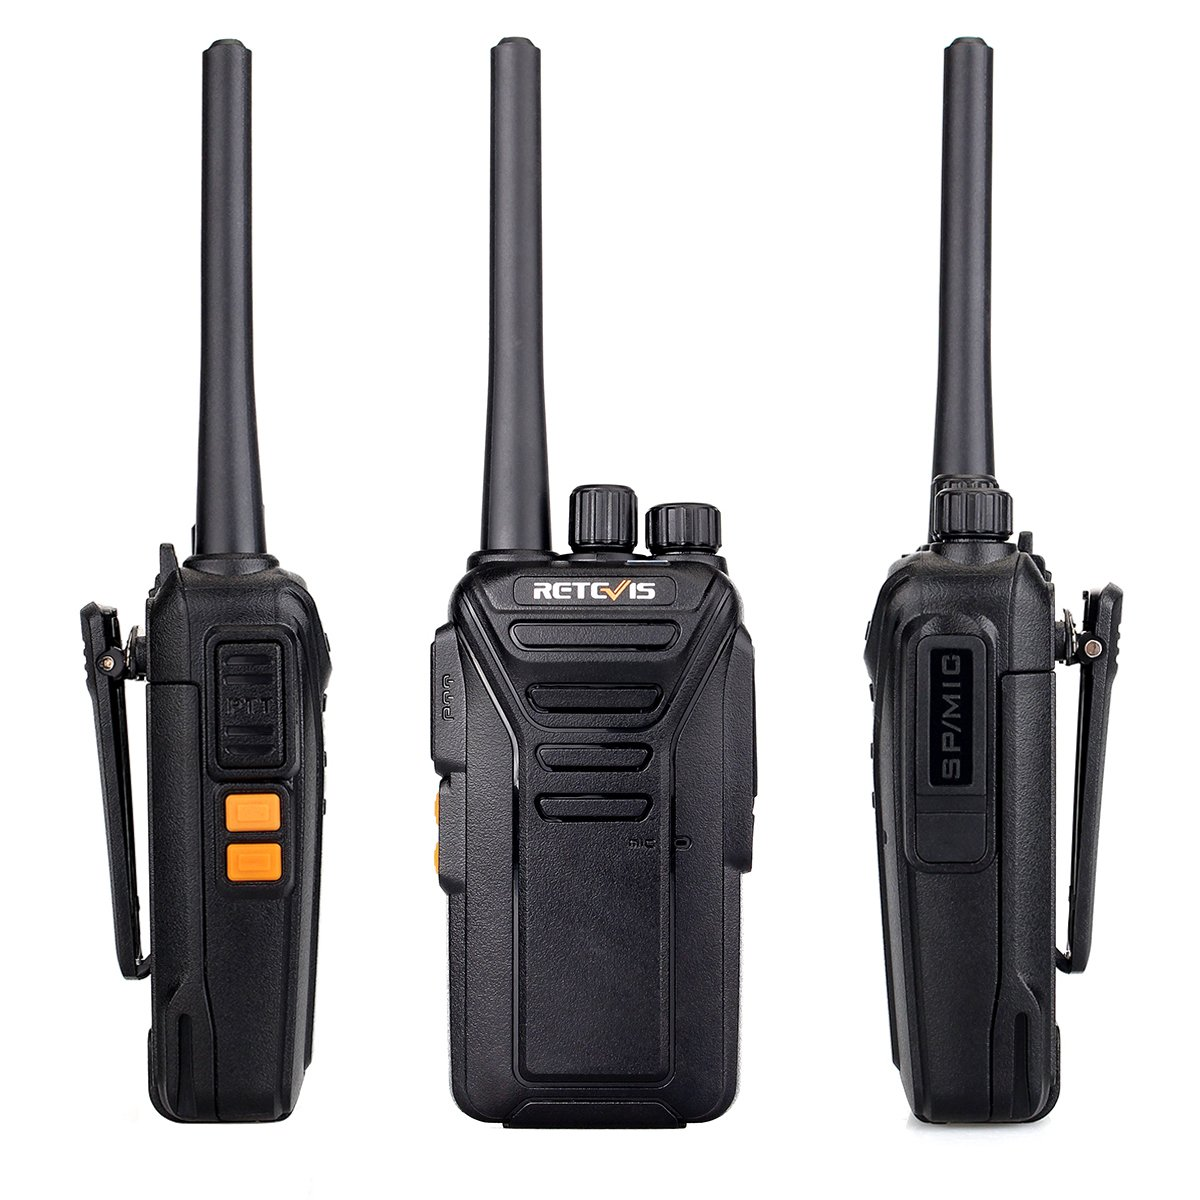 Retevis RT27V MURS Two Way Radio 5 Channel VHF DCS Encryption License-Free  Walkie Talkies with Covert Air Acoustic Earpiece(Black,10 Pack)